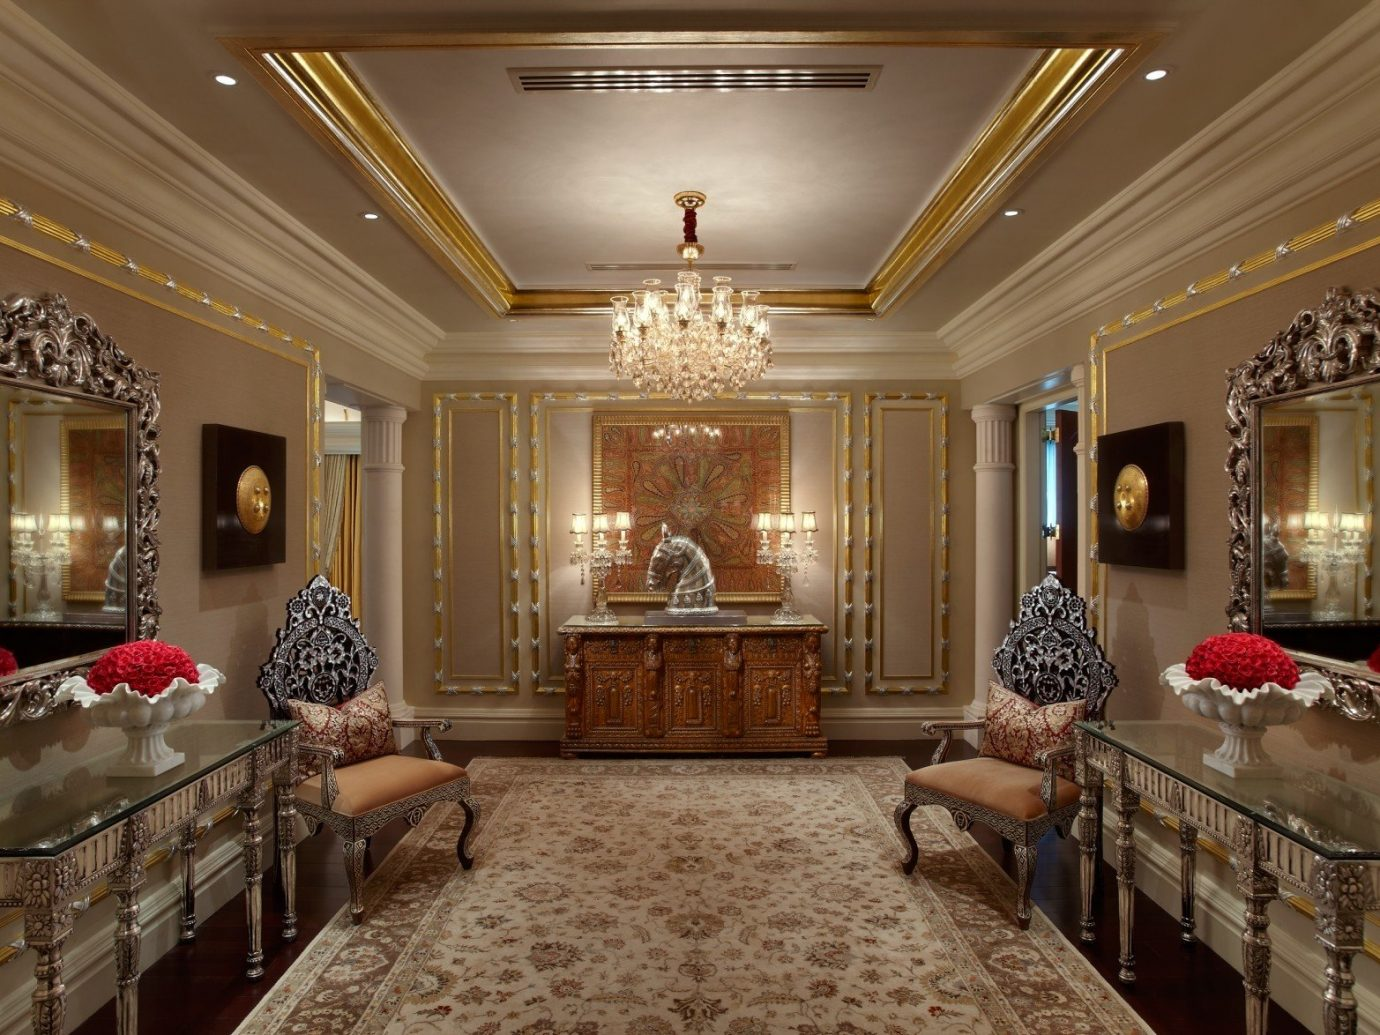 Hotels Luxury Travel indoor ceiling wall floor room living room interior design home Lobby estate furniture flooring Suite window decorated fancy several